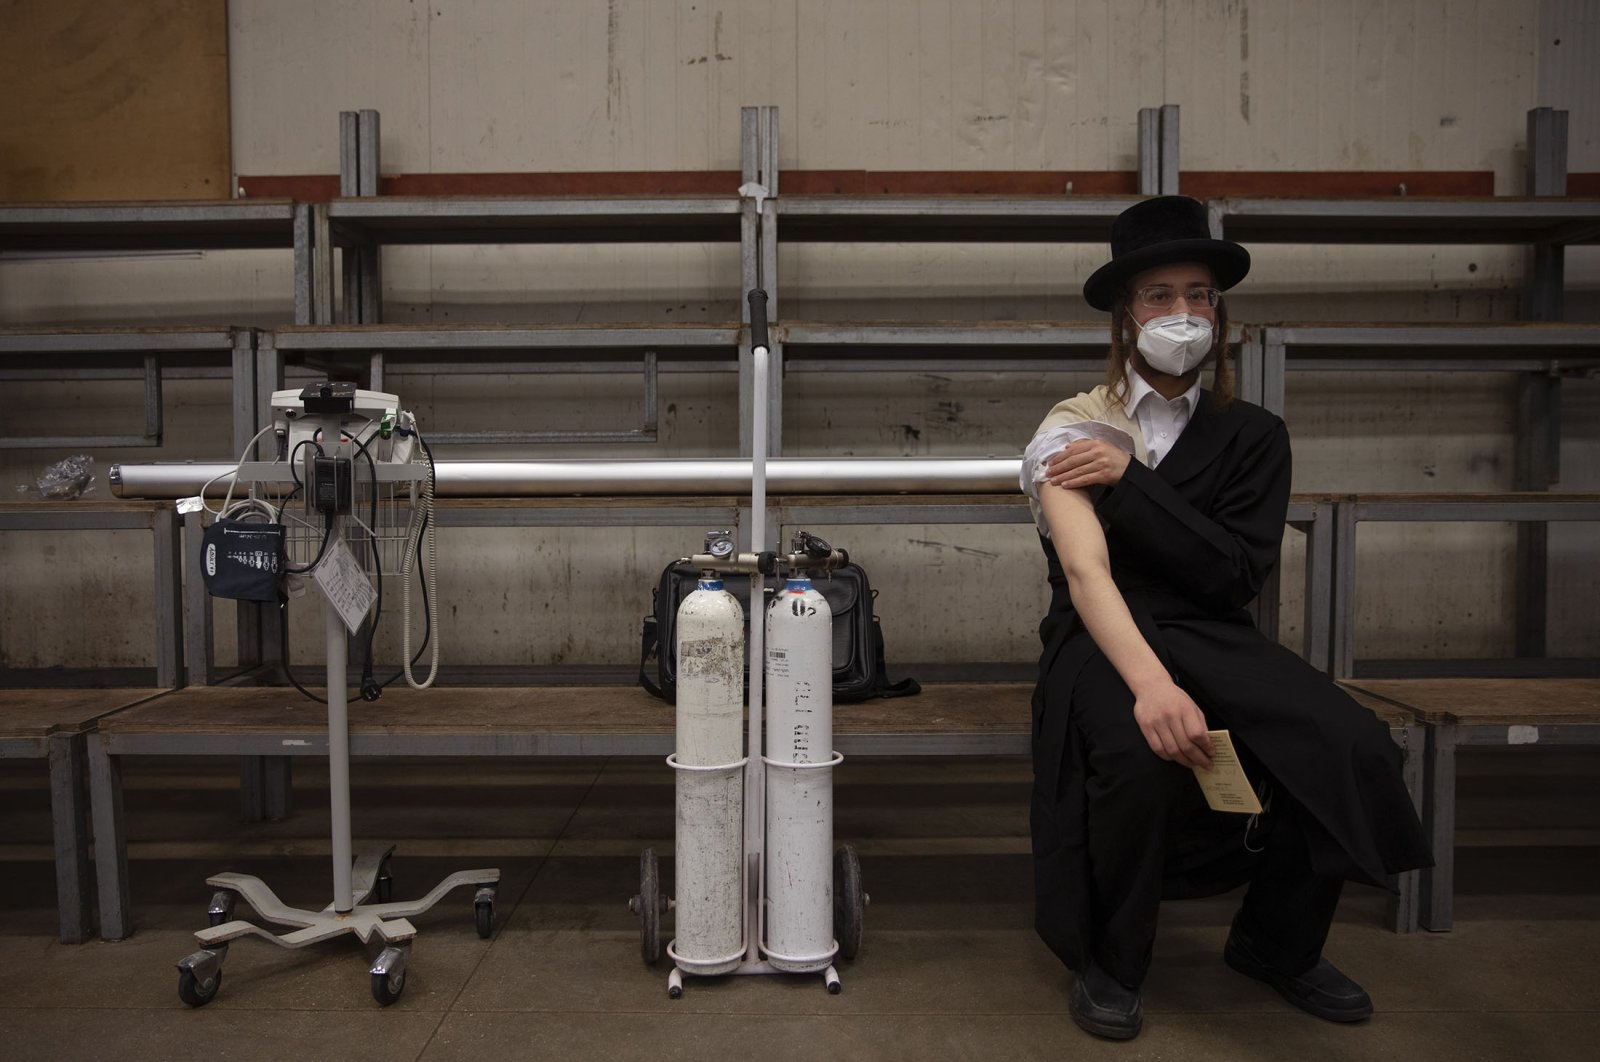 An ultra-Orthodox Jewish man rests after receiving his second dose of the Pfizer/BioNTech COVID-19 vaccine at a coronavirus vaccination center set up at a synagogue in Bnei Brak, Israel, Sunday, March. 7, 2021. (AP Photo)